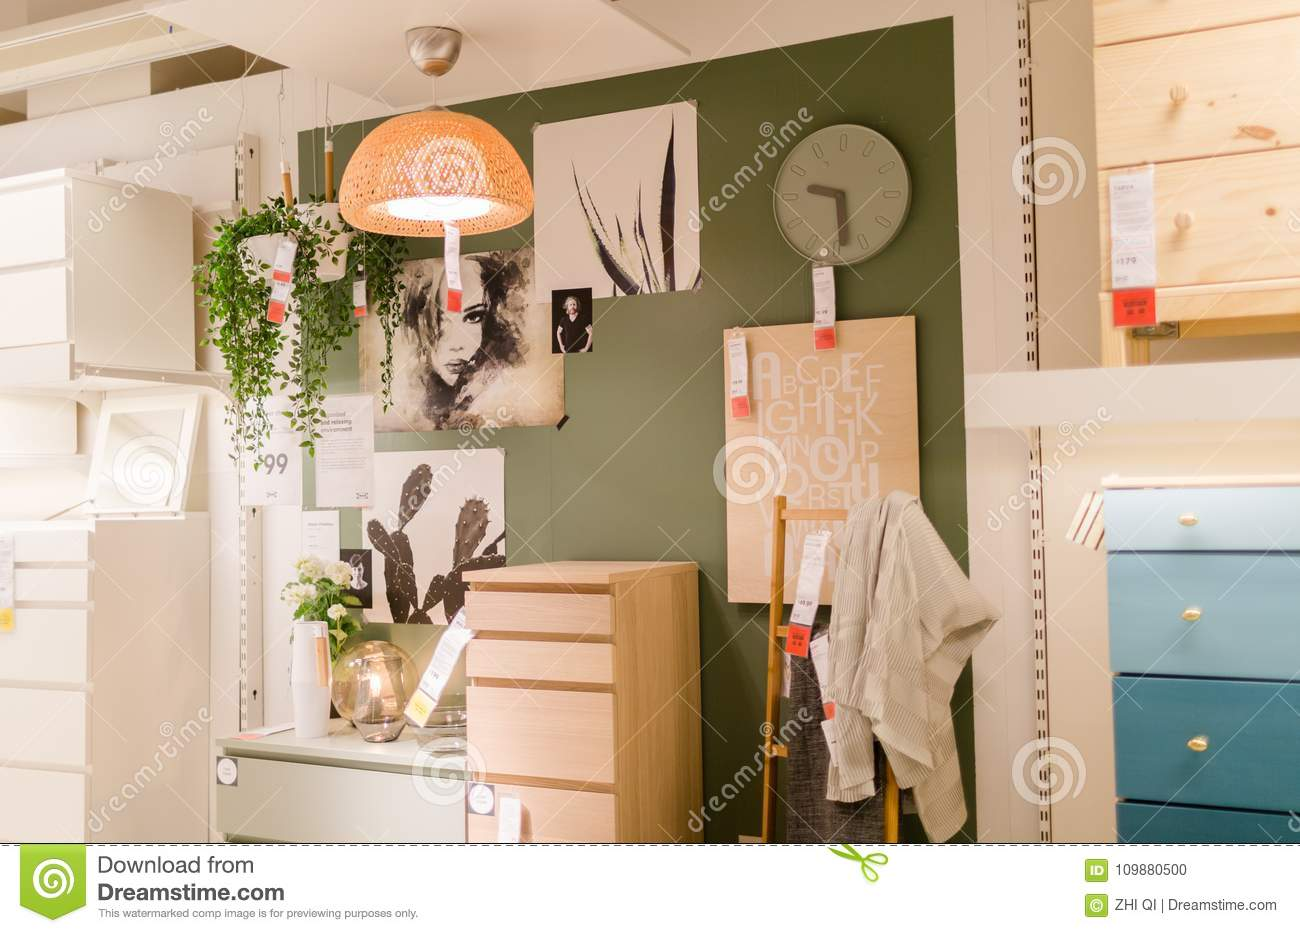 living room cabinets furniture display editorial image image of